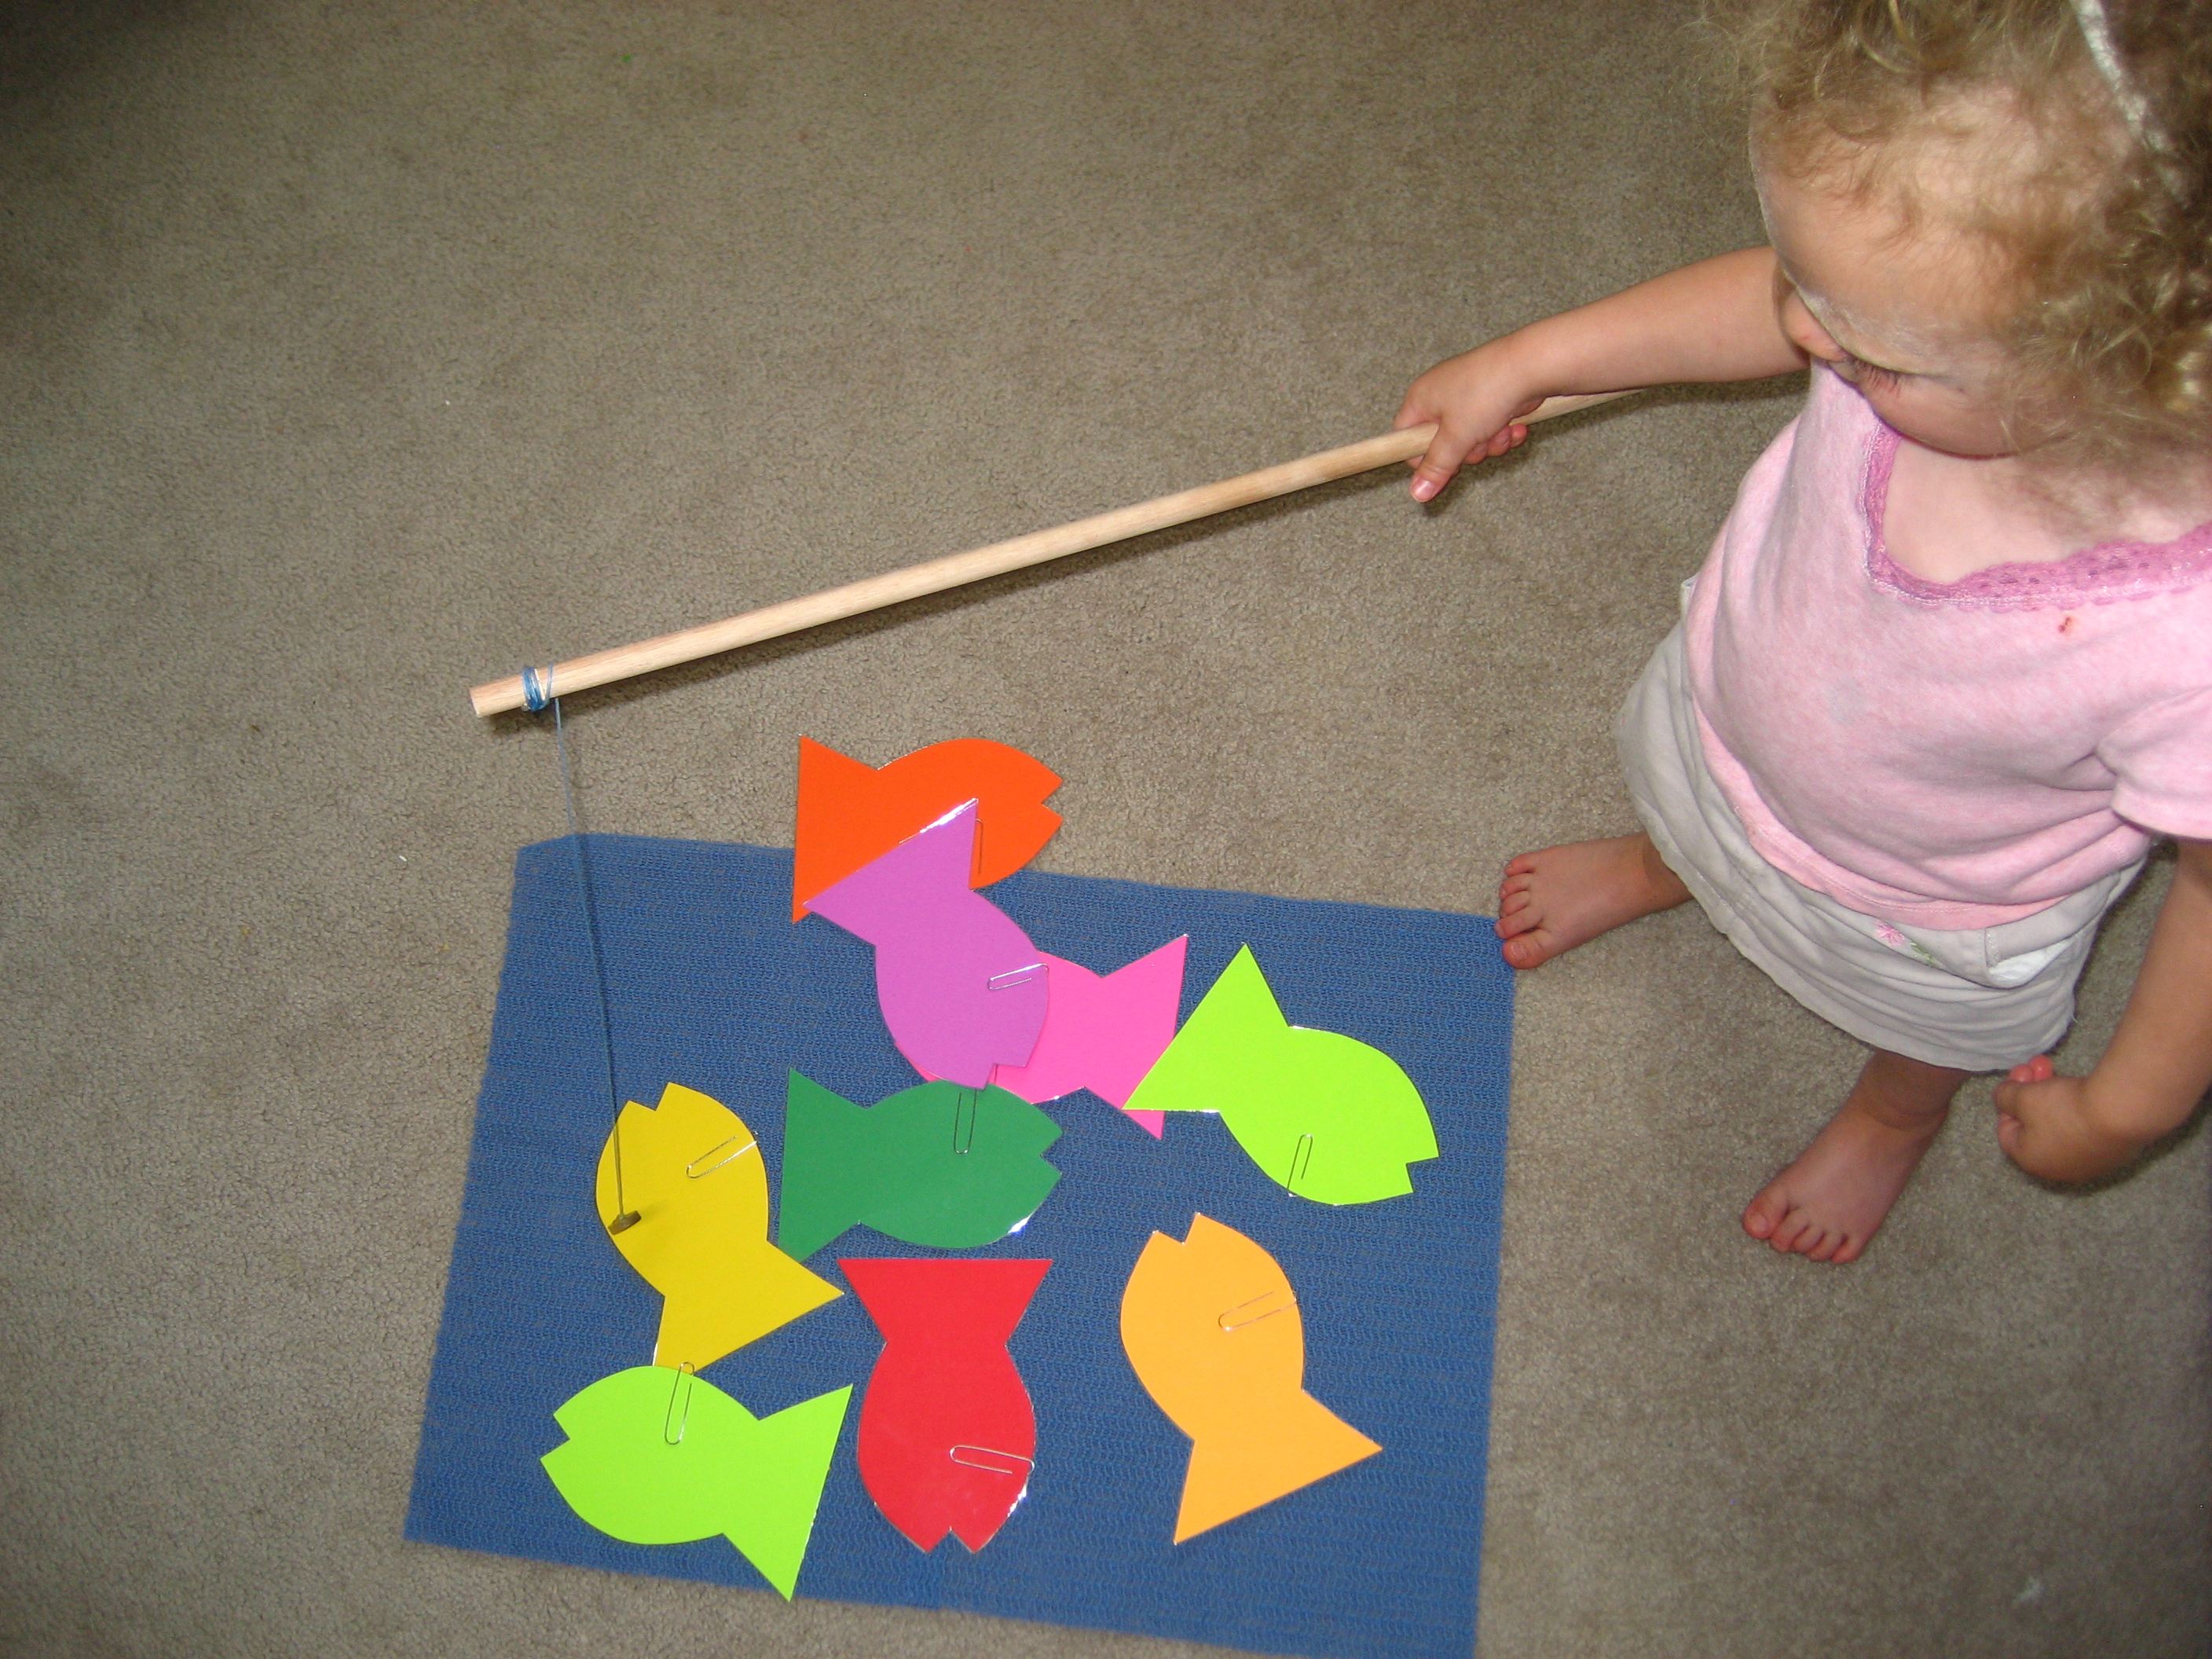 preschool projects Simple, frugal preschool activities to do at home whether you homeschool preschool, supplement at home or need preschool activities for a rainy day.